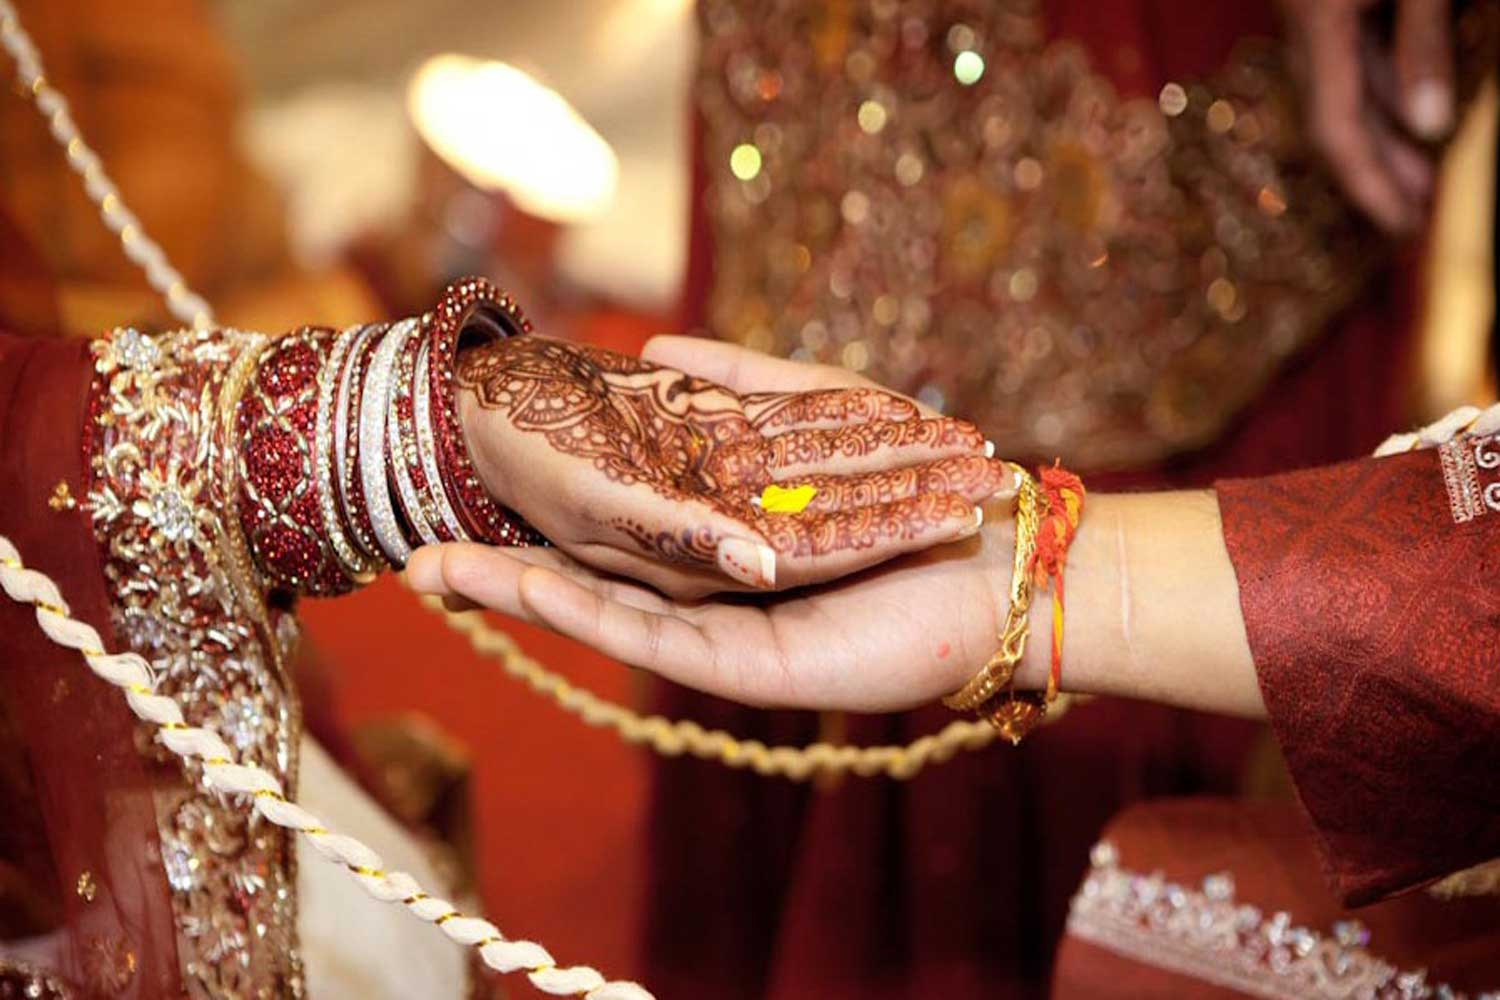 A guy from India married two sisters now he faces a prison 2